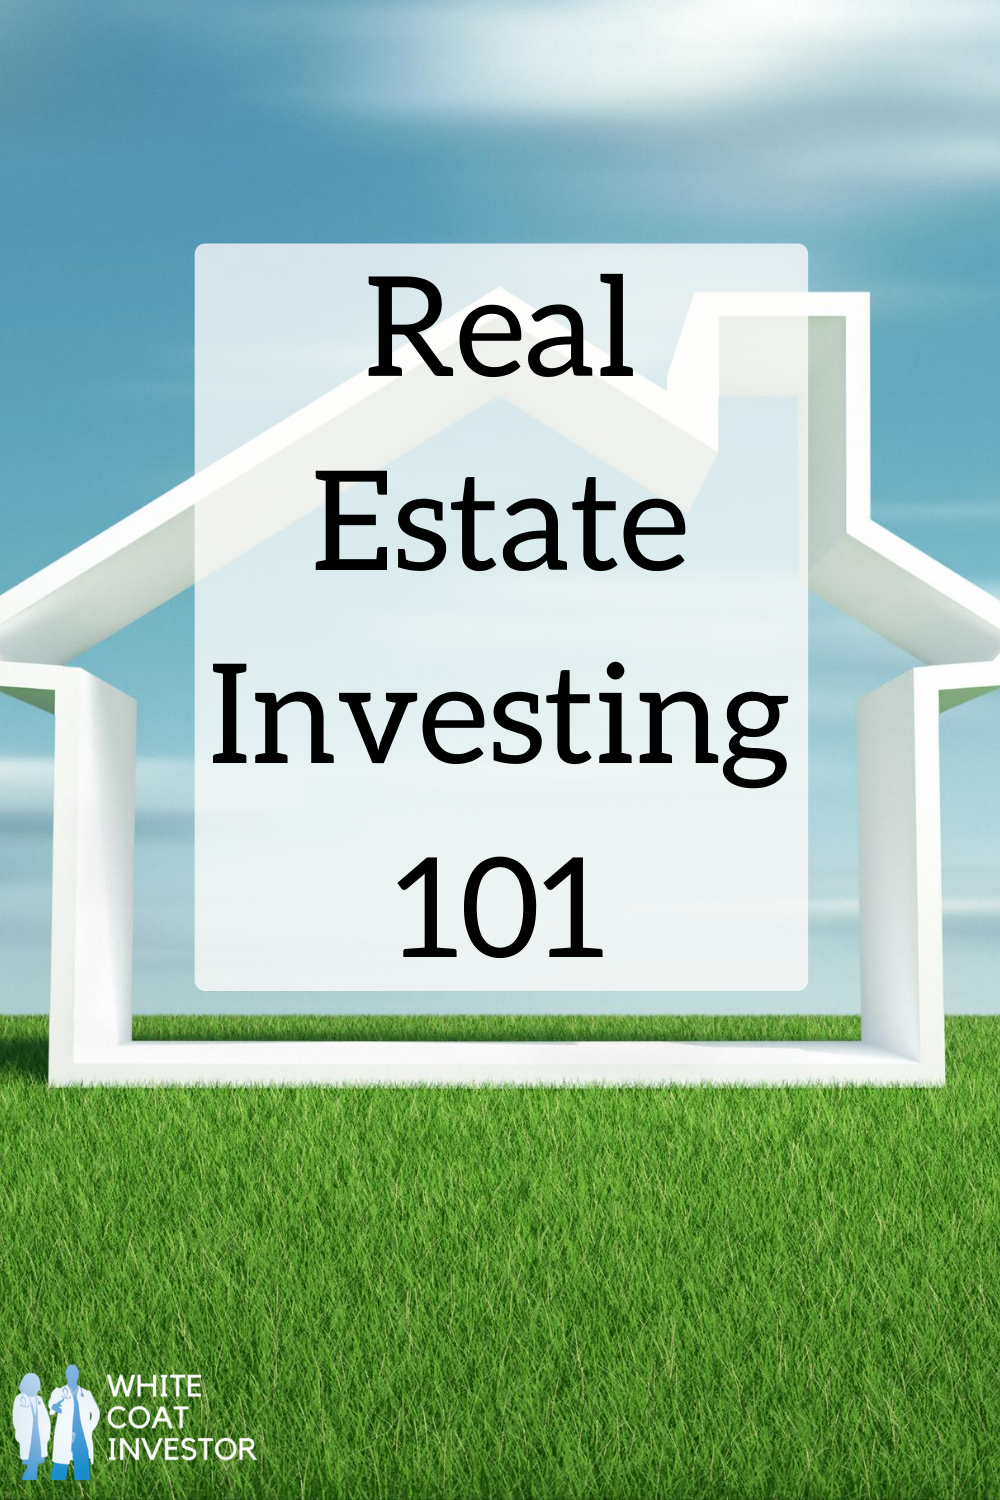 Real Estate Investing 101 Learn the basics of real estate investing -- from hard money loans to mezzanine debt, capital stacks to waterfalls, depreciation, 1031 exchanges, strategies, and lots more. #physician #realestate #investing #cashflowingproperty #leverage #NNN #equity #debt #depreciation #1031exchange #leverage